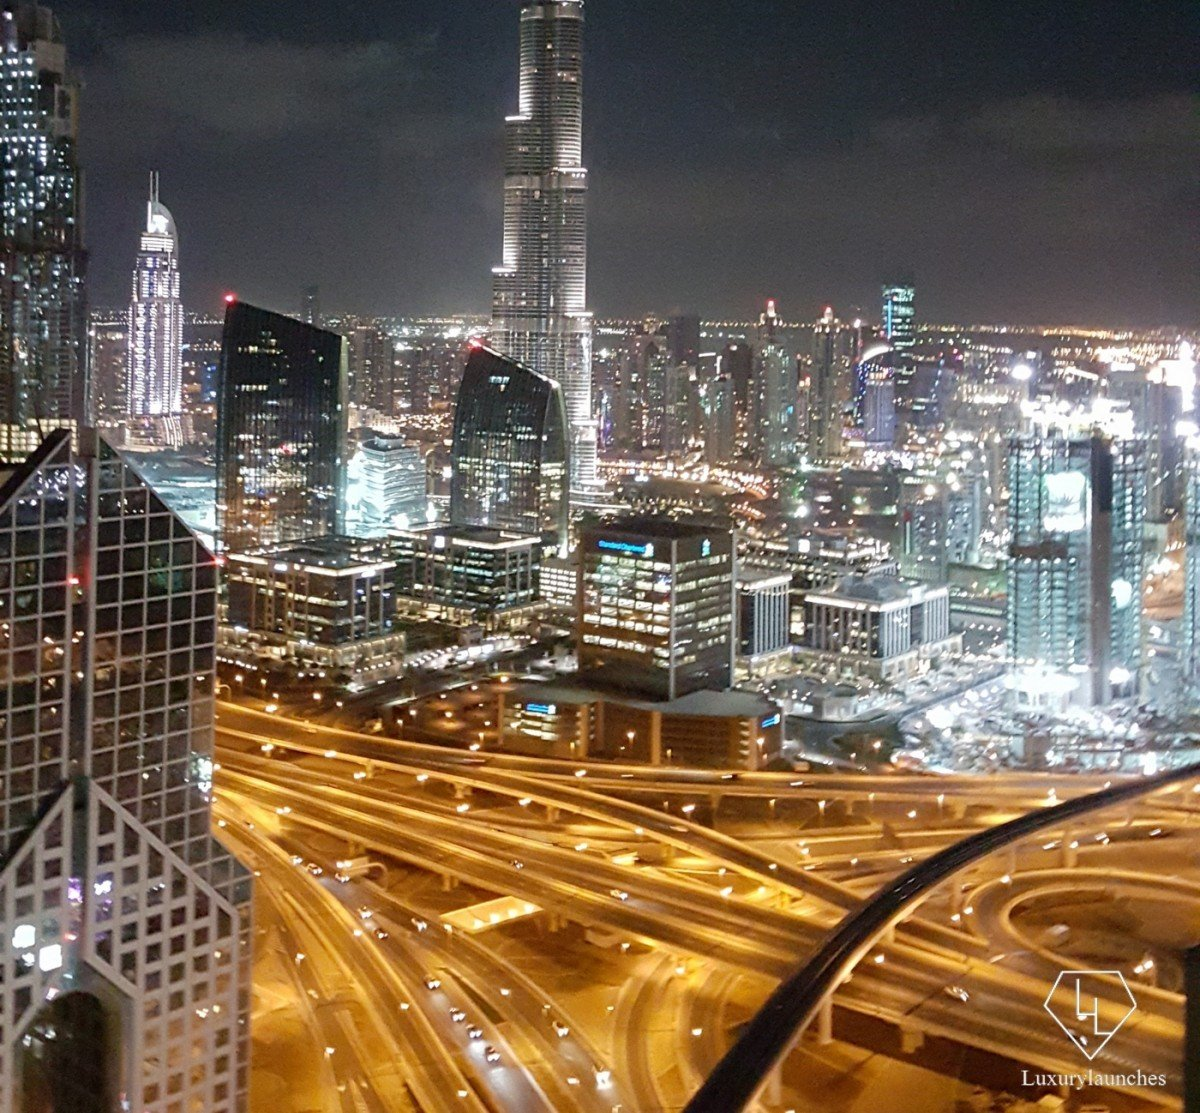 Dubai in its nocturnal glory from our Horizon Premier room.